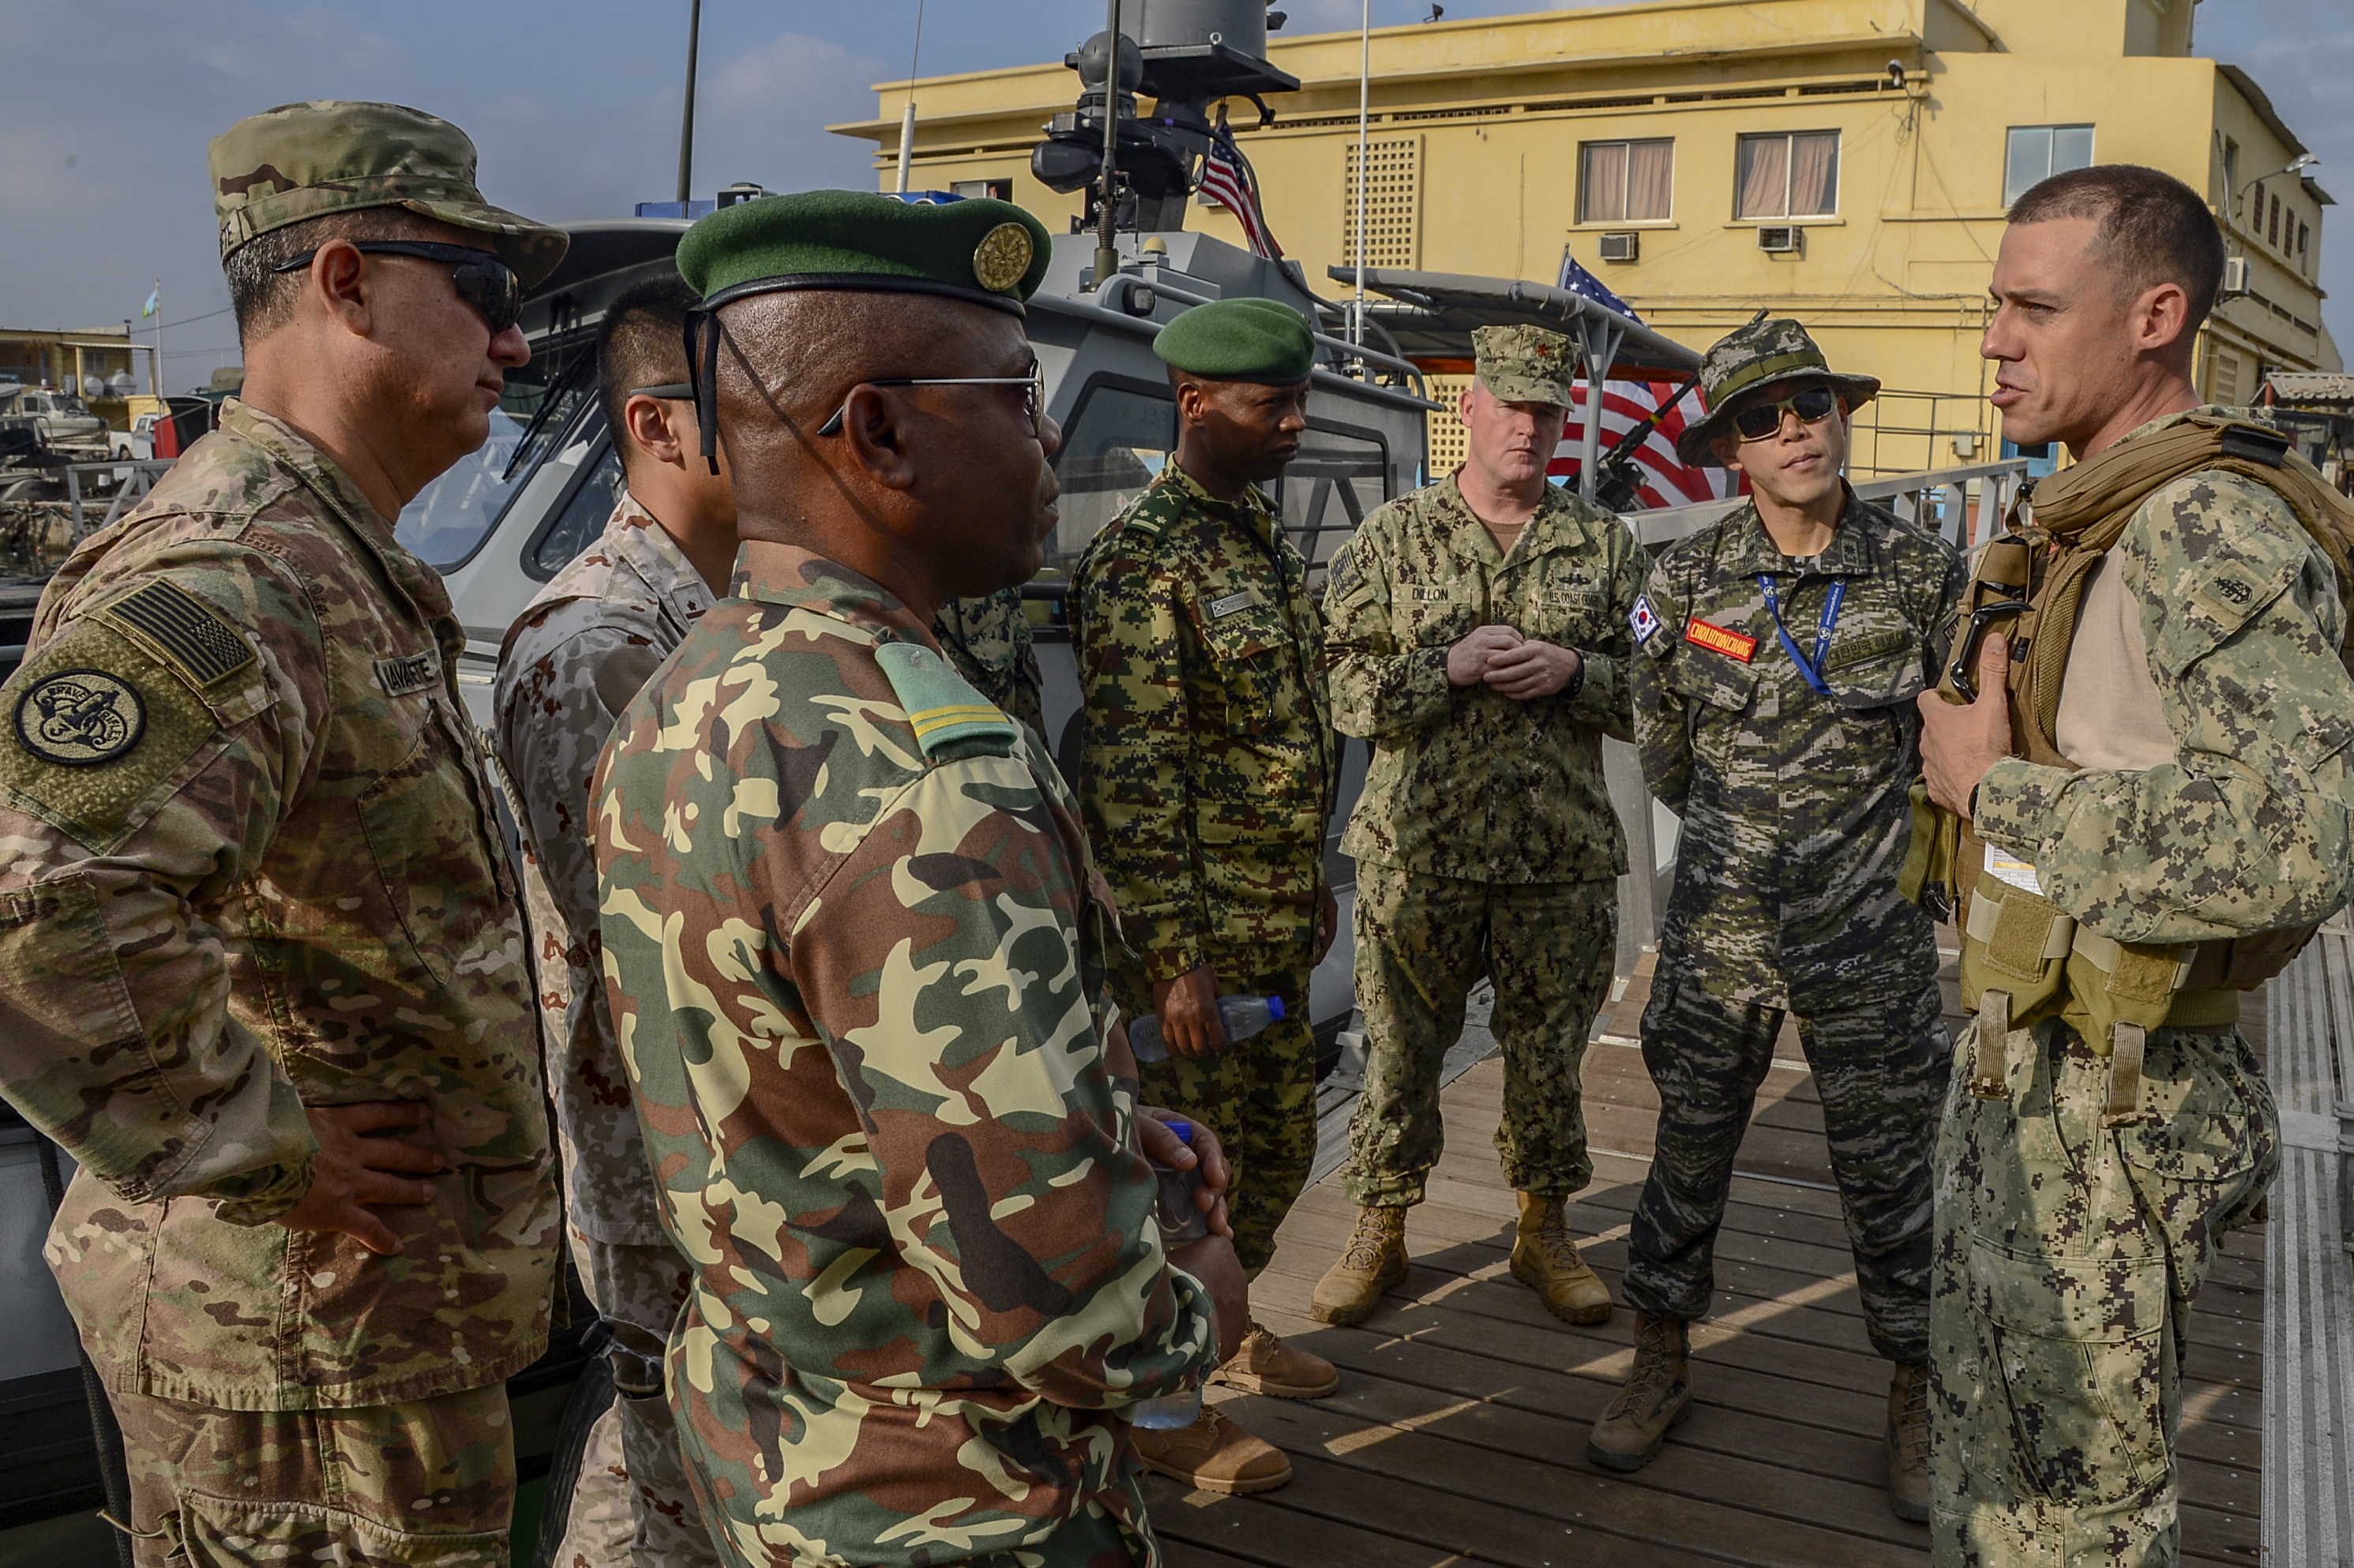 Foreign Liaison Officers (FLOs), assigned to Combined Joint Task Force-Horn of Africa (CJTF-HOA), receive a safety brief prior to observing maritime security operations (MSO) with Coastal Riverine Squadron (CRS) 8 at the Port of Djibouti, Oct. 23, 2018.  The CJTF-HOA FLOs observed the operations to better understand MSO and the CRS-8 mission. (U.S. Navy photo by Mass Communication Specialist 2nd Class Timothy M. Ahearn)